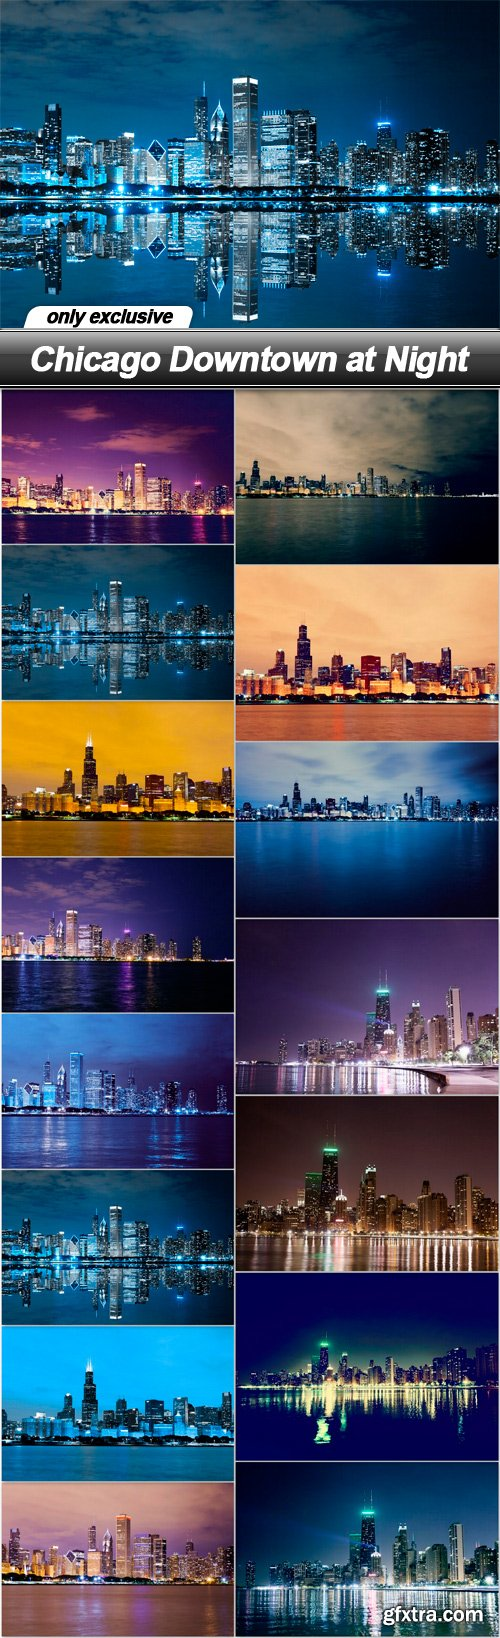 Chicago Downtown at Night - 15 UHQ JPEG